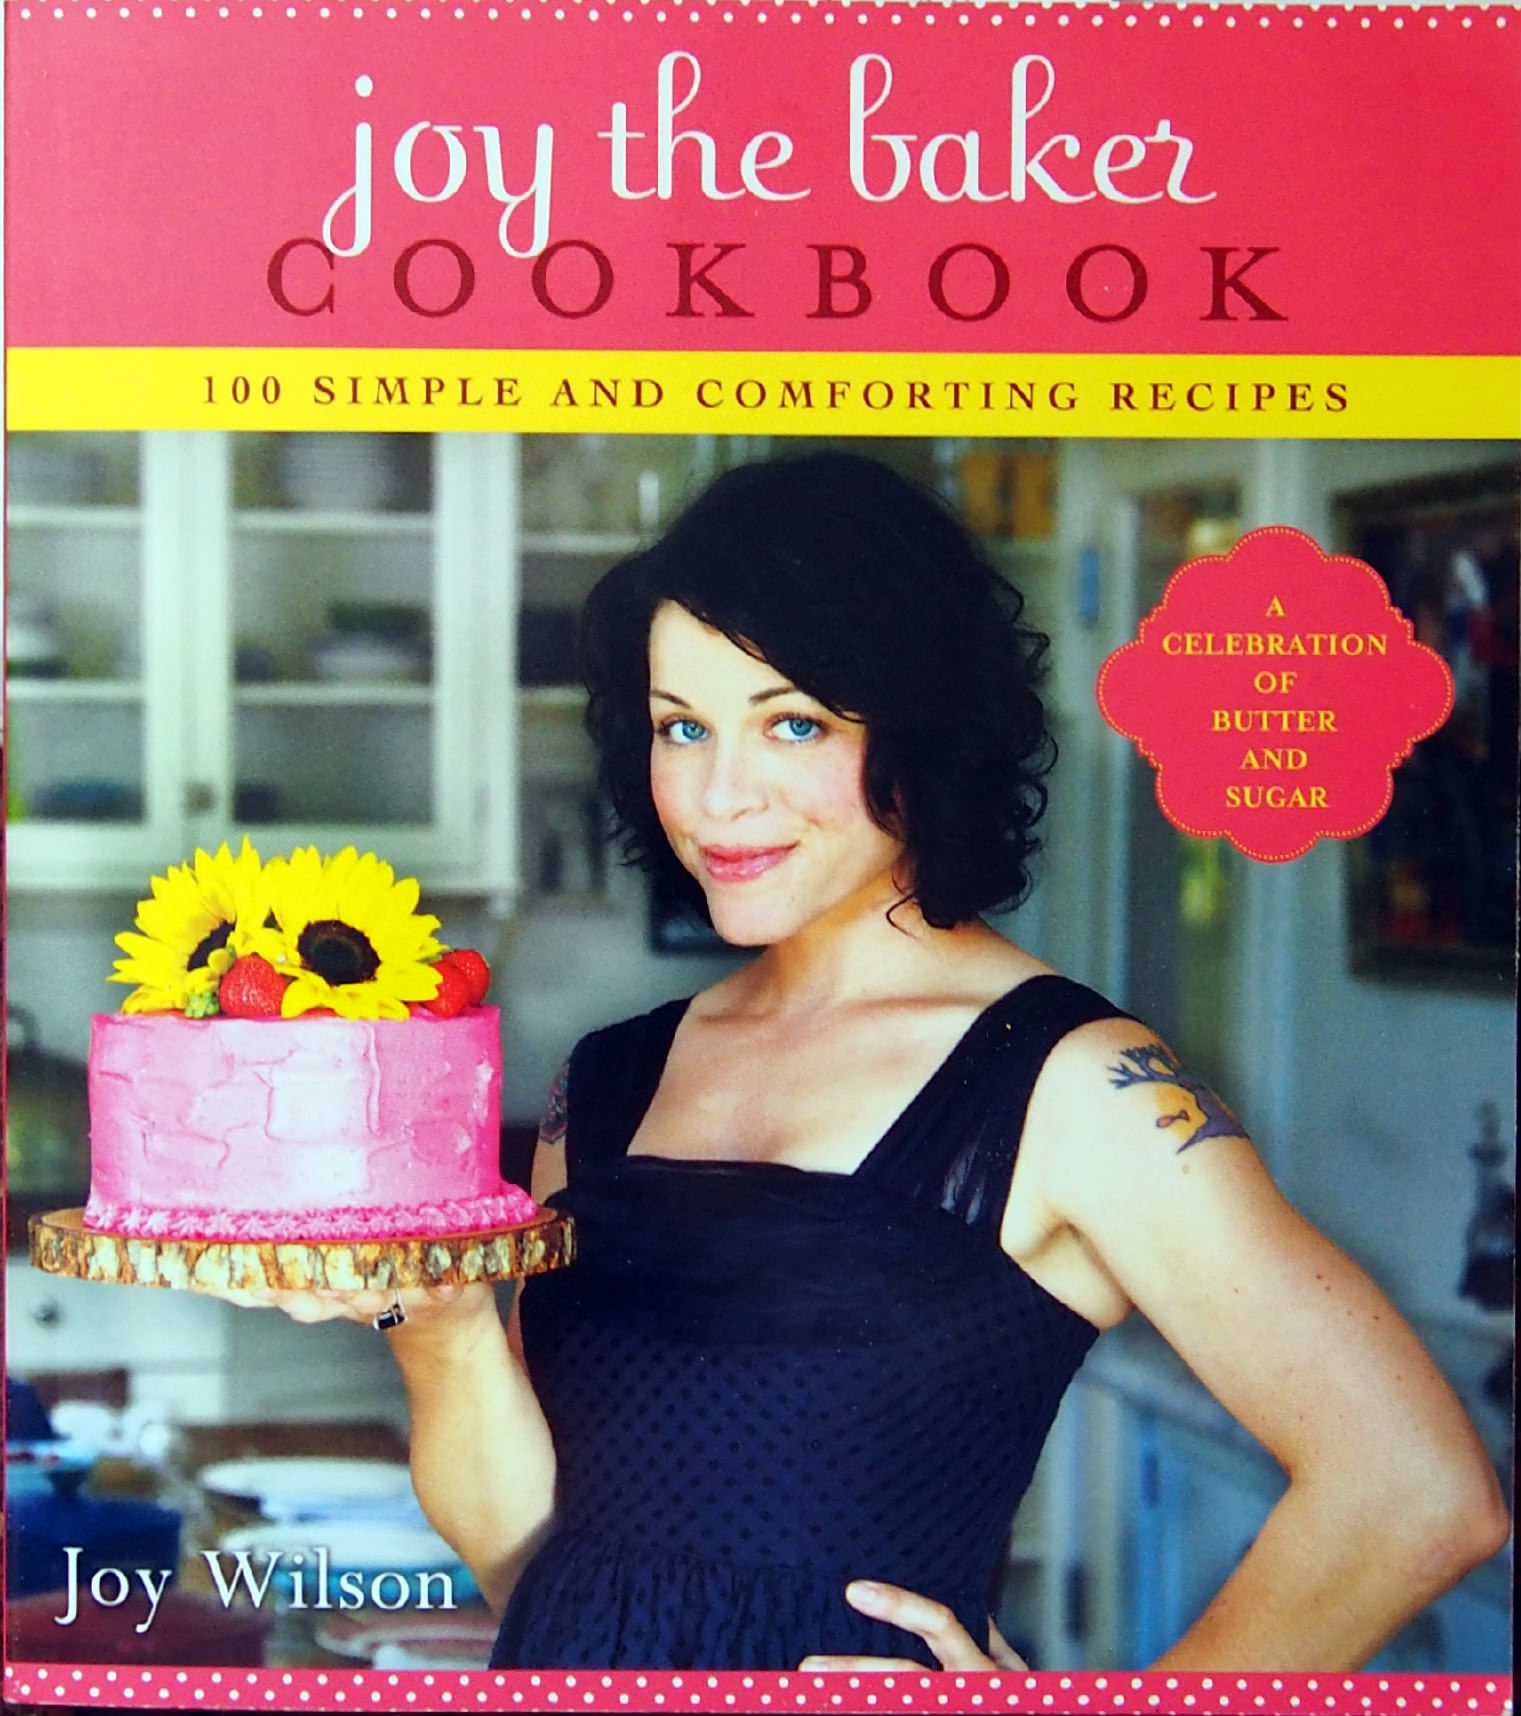 Joy the Baker Cookbook Cover